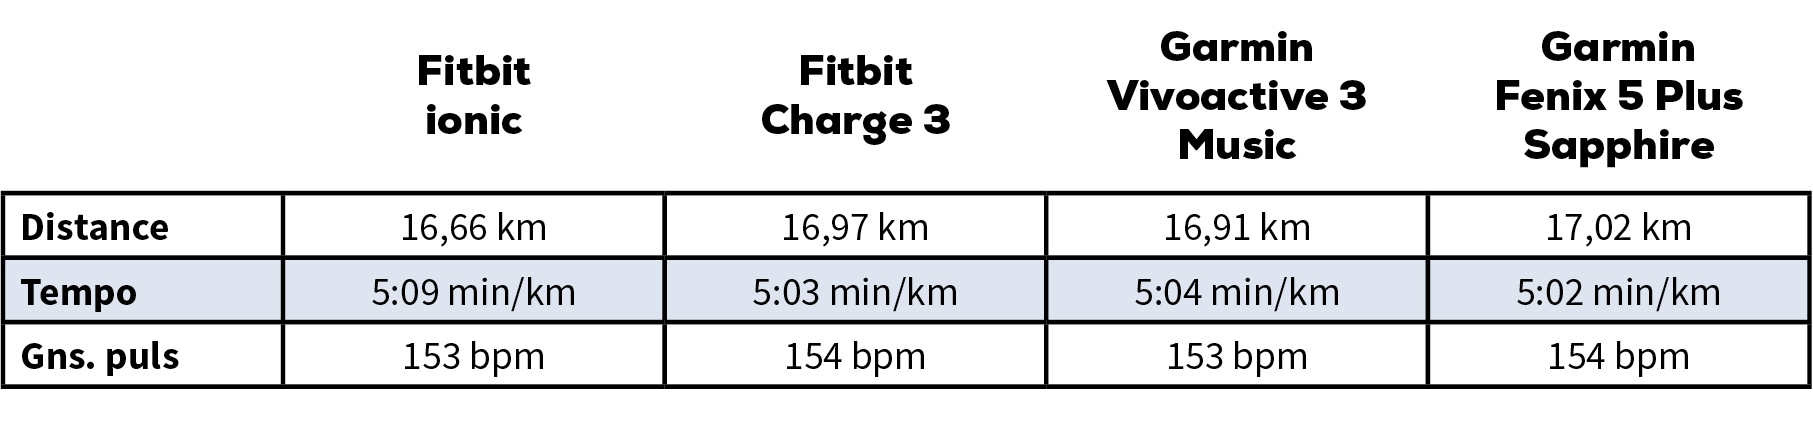 fitbit vs. garmin